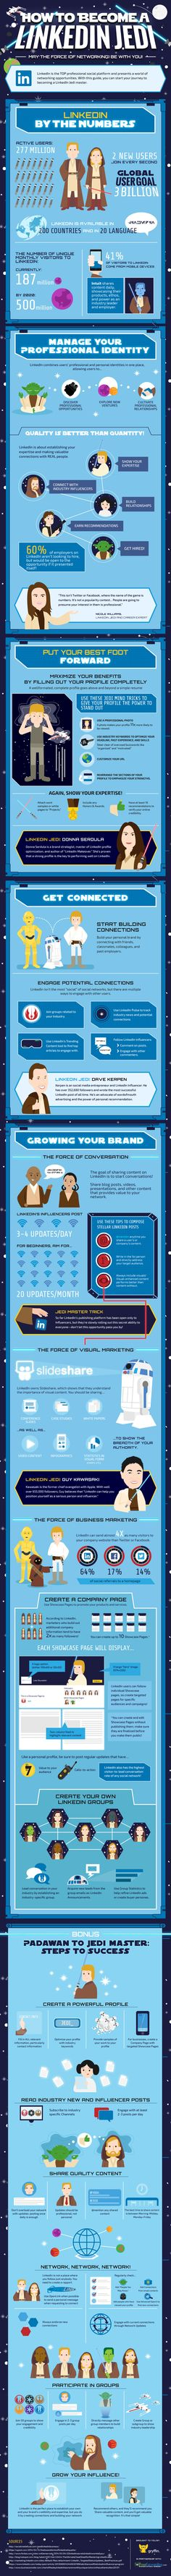 LinkedIn Infographic: May the Force (of Networking) Be With You! - #socialmedia #LinkedIn #Infographic